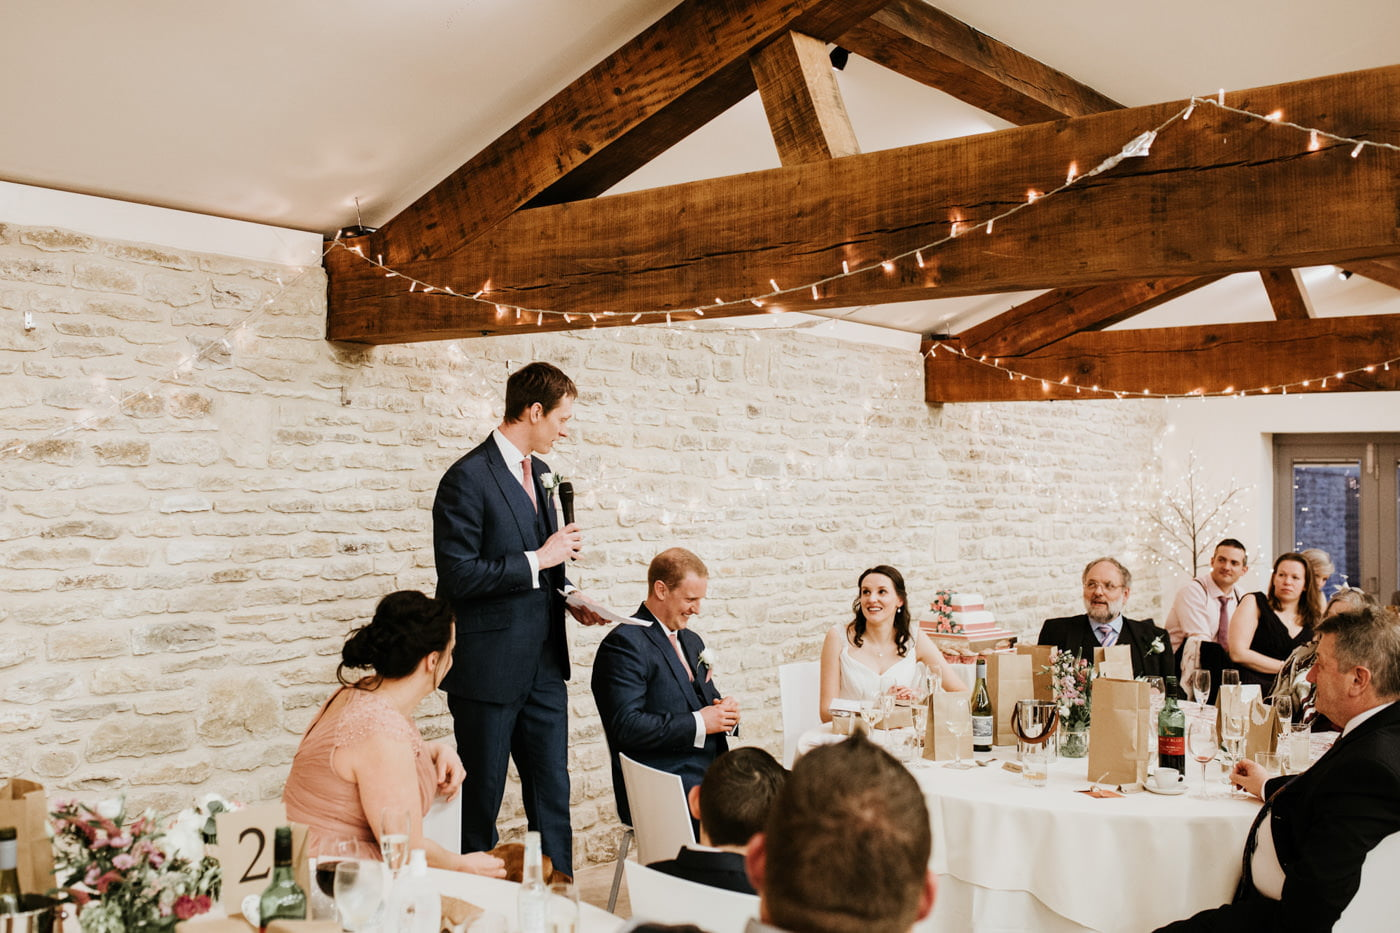 Ruth and Ben, Winkworth Farm, Wiltshire 85